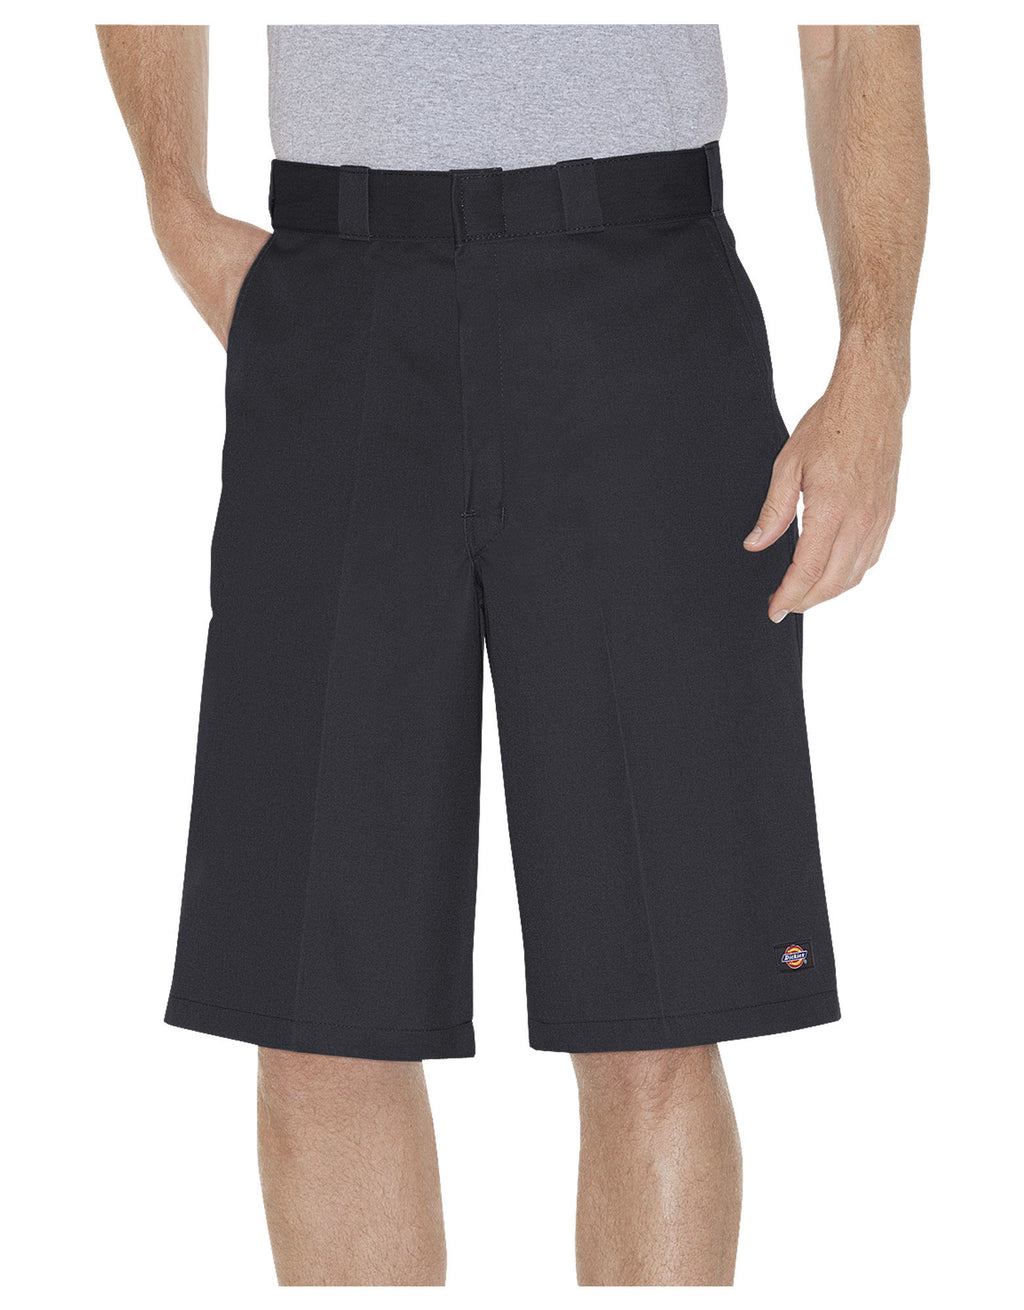 Dickies Men's Multi-Use Pocket Work Short Closeout-4